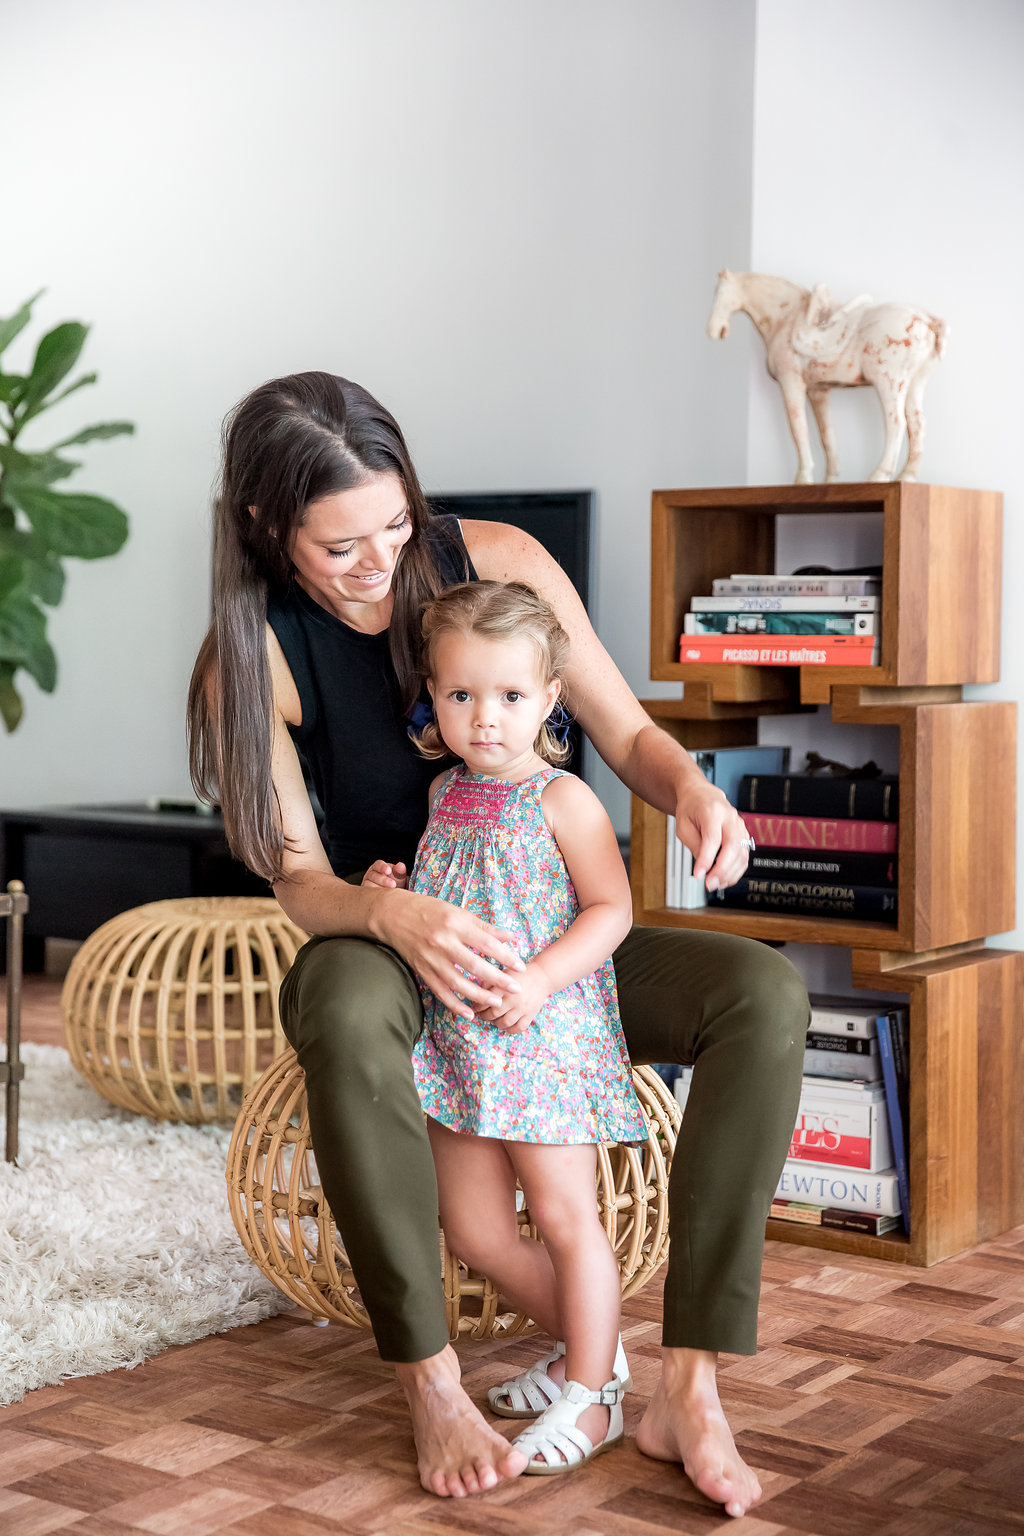 Sarah Garner, founder of Retykle with daughter Olympia